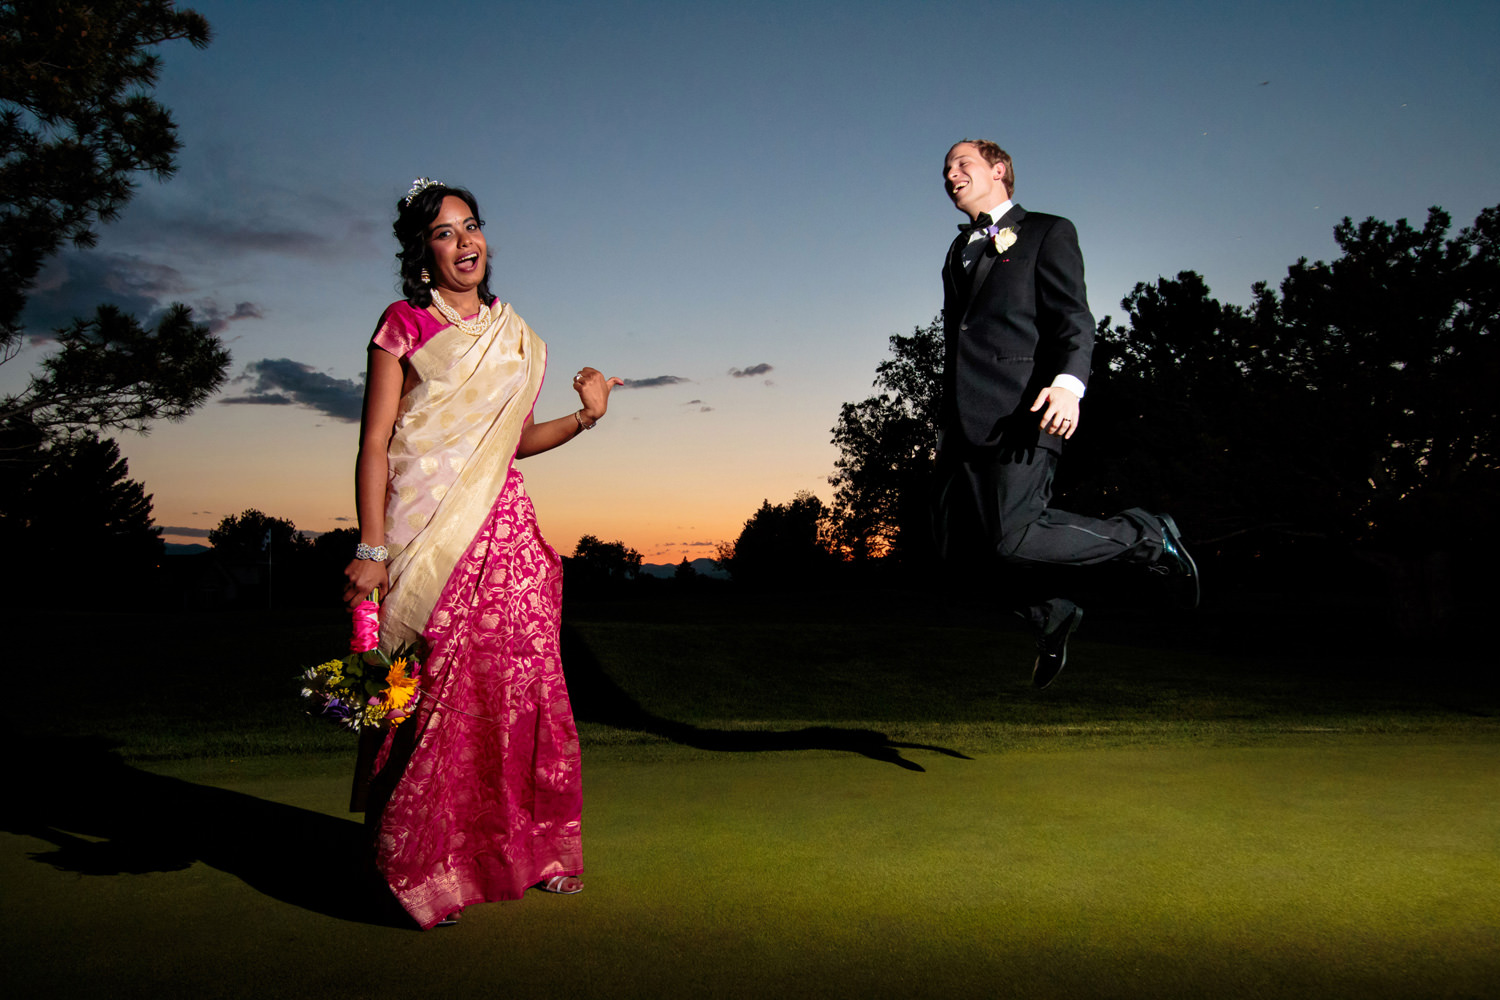 fort-collins-country-club-wedding-photographer-tomKphoto083.jpg